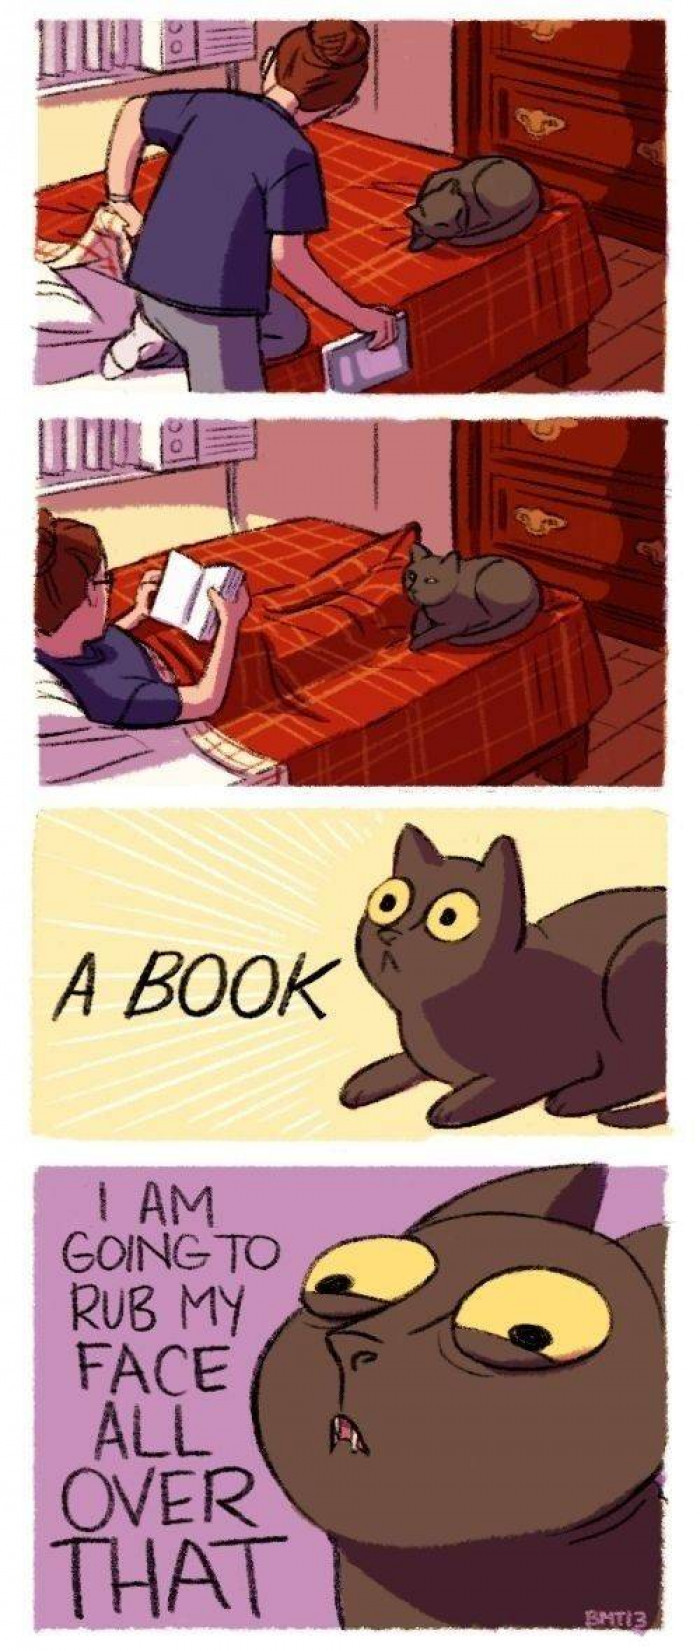 13. I will destroy that book